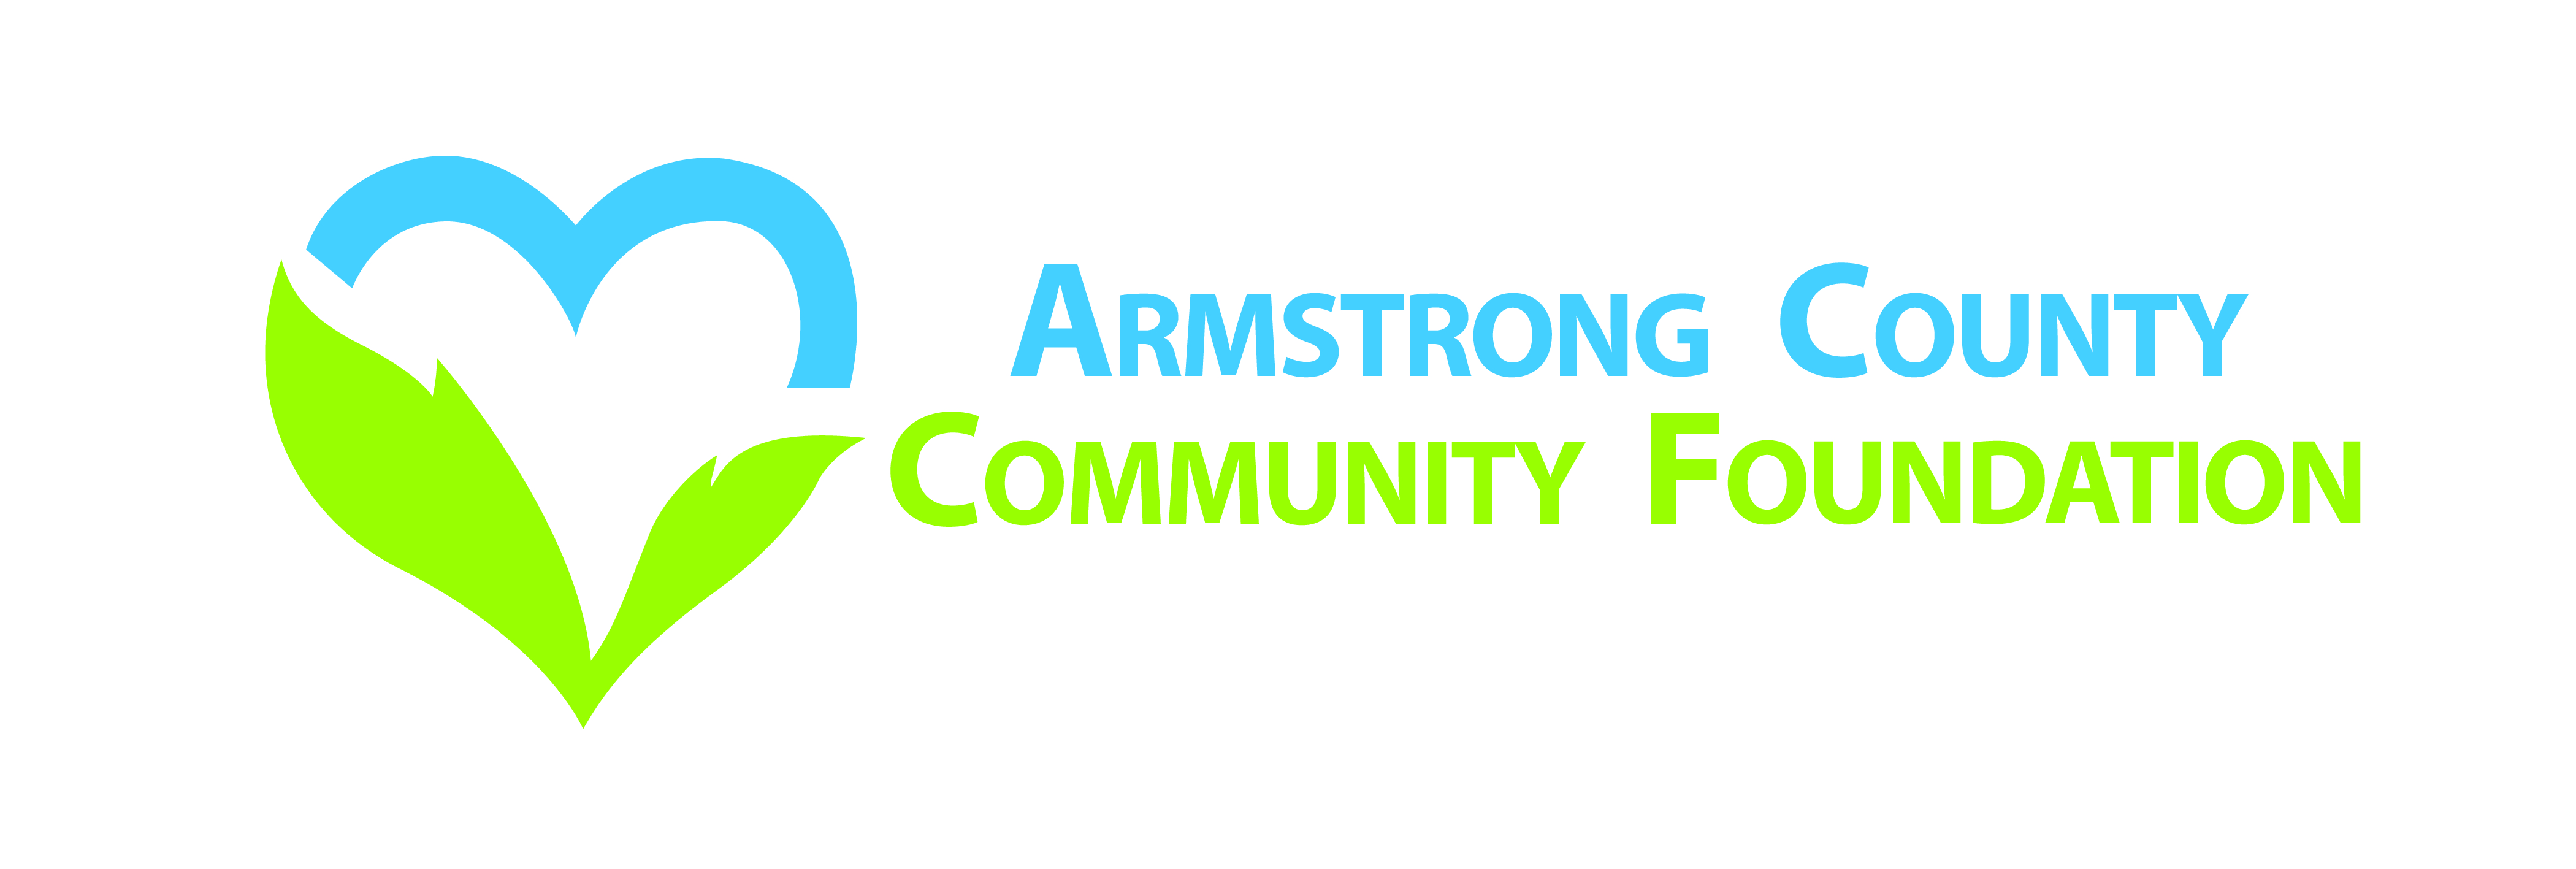 Armstrong County Community Foundation